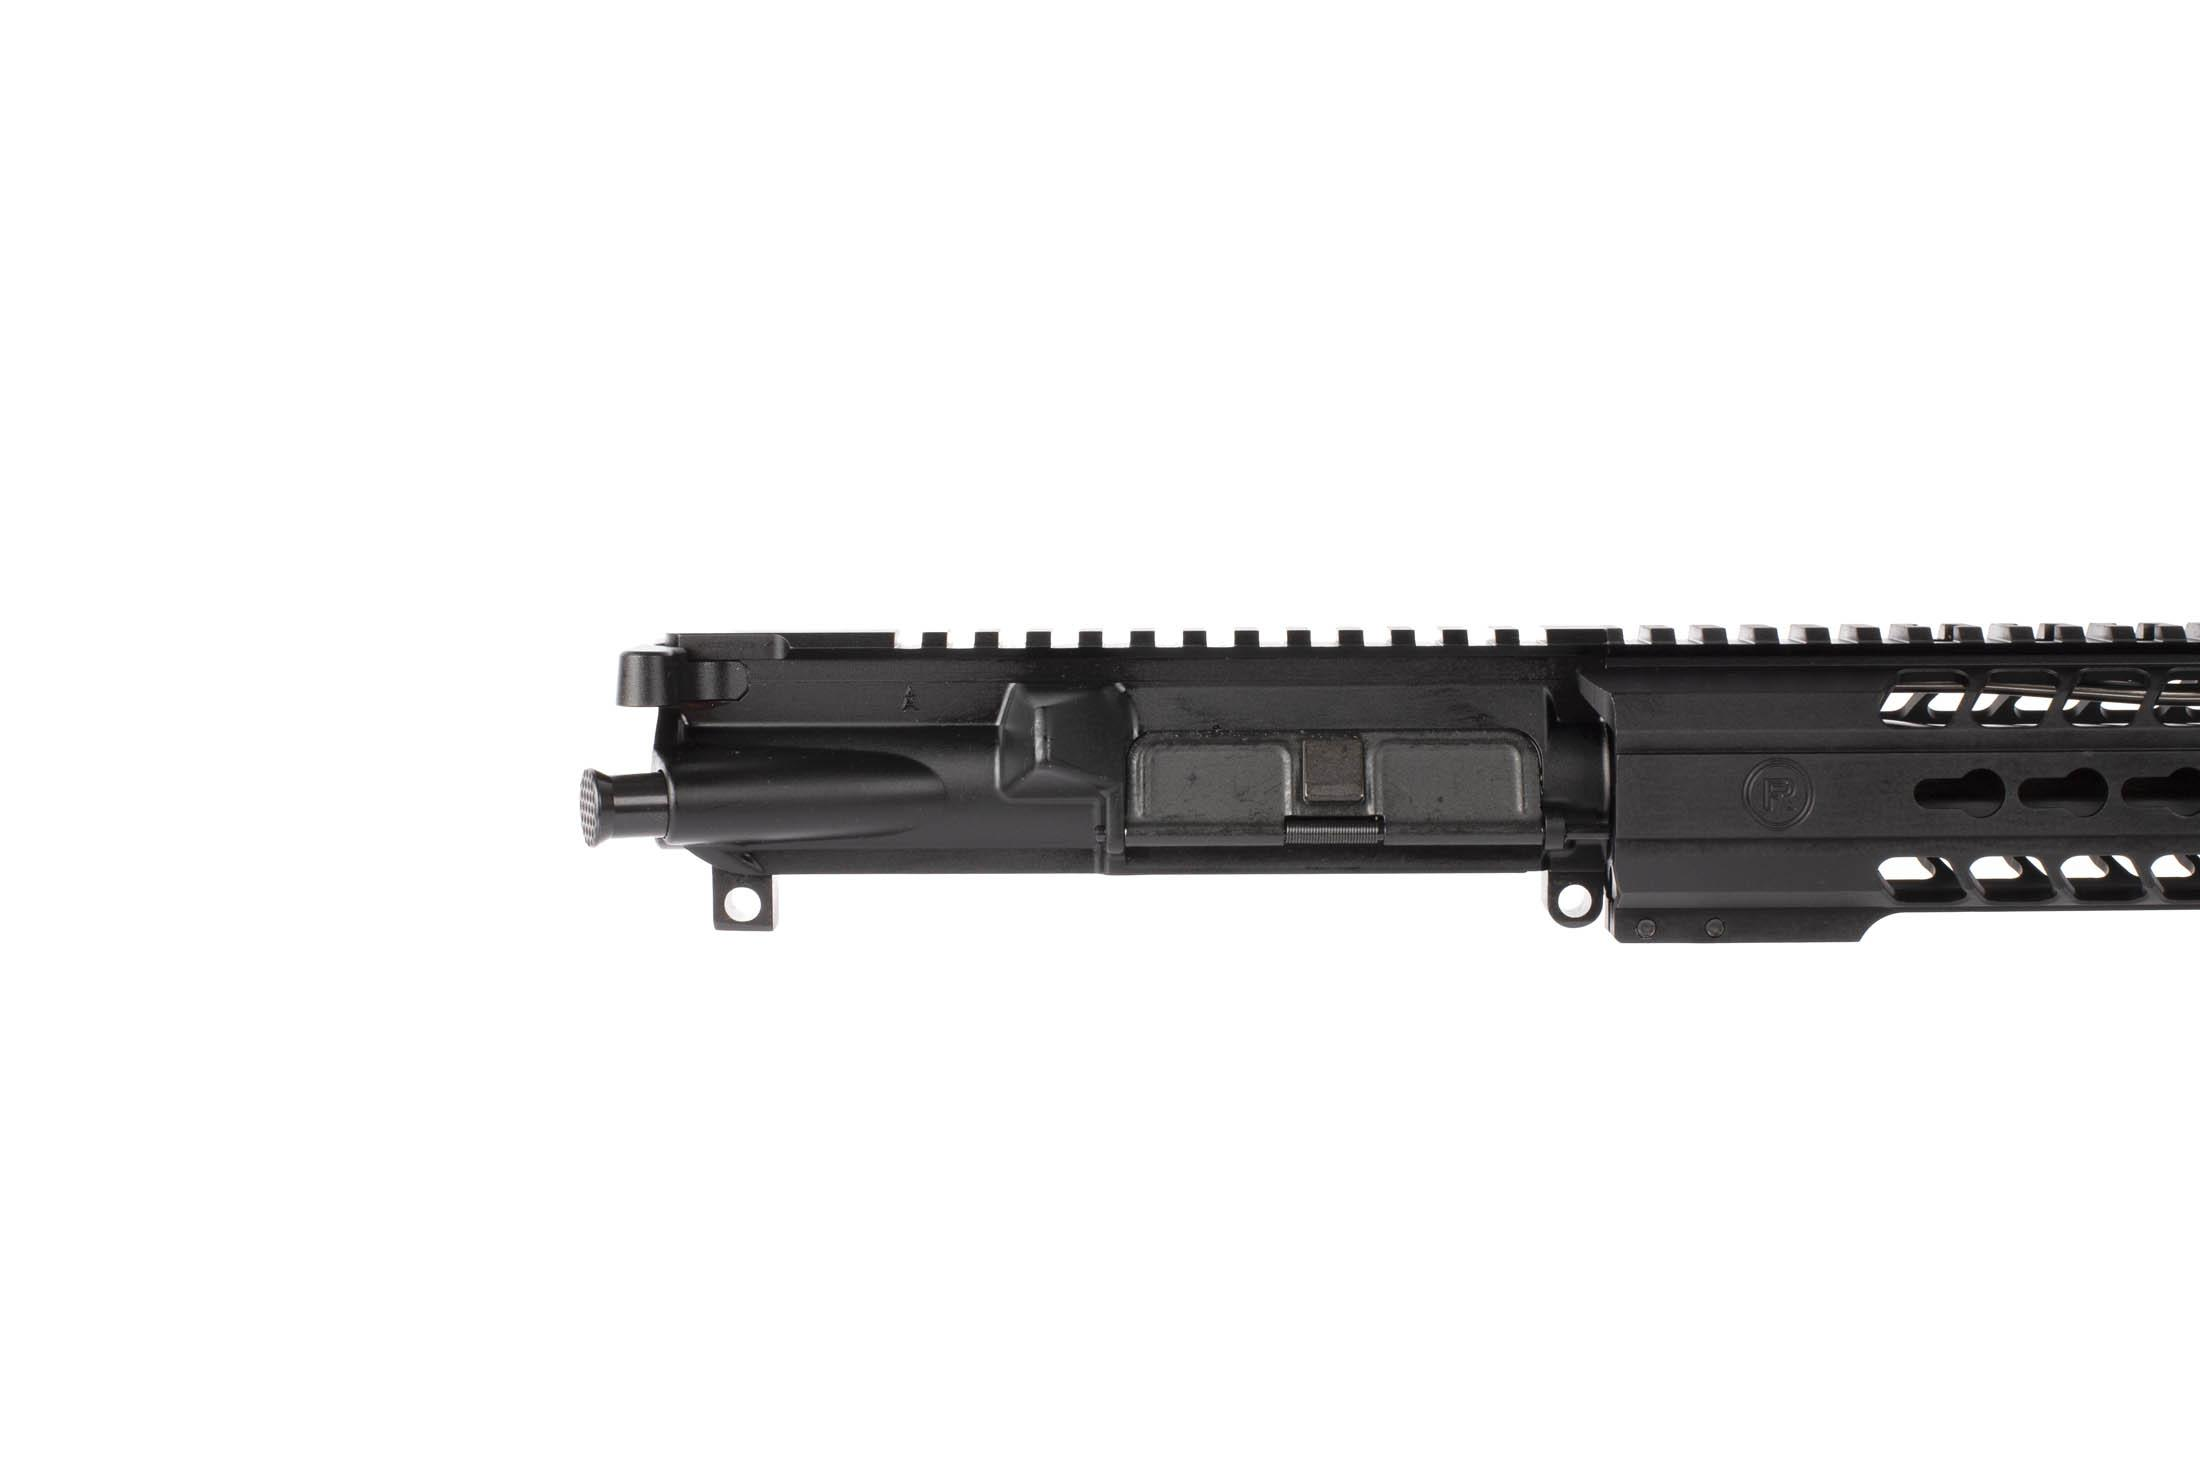 Radical Firearms 16in .458 SOCOM AR-15 complete upper mounts to standard AR-15 lower receivers